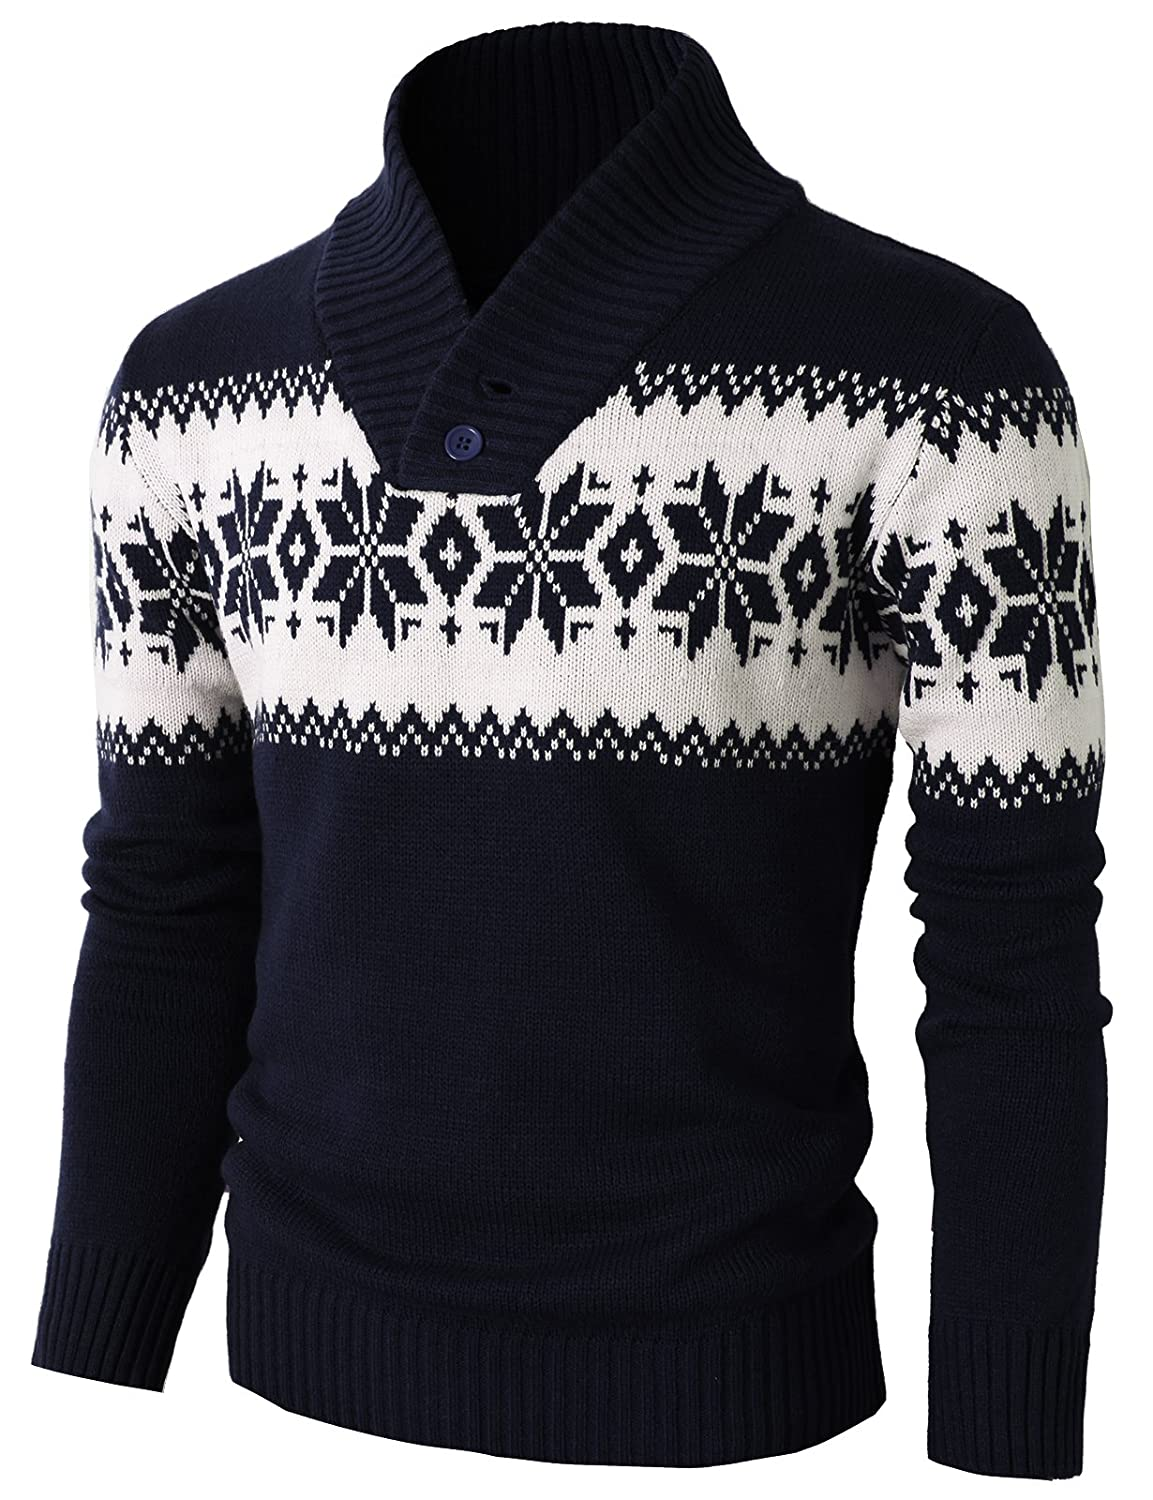 Men's Vintage Style Sweaters – 1920s to 1960s H2H Mens Fashion Shawl Collar Pullover Christmas Sweater With Snowflake Pattern $32.50 AT vintagedancer.com